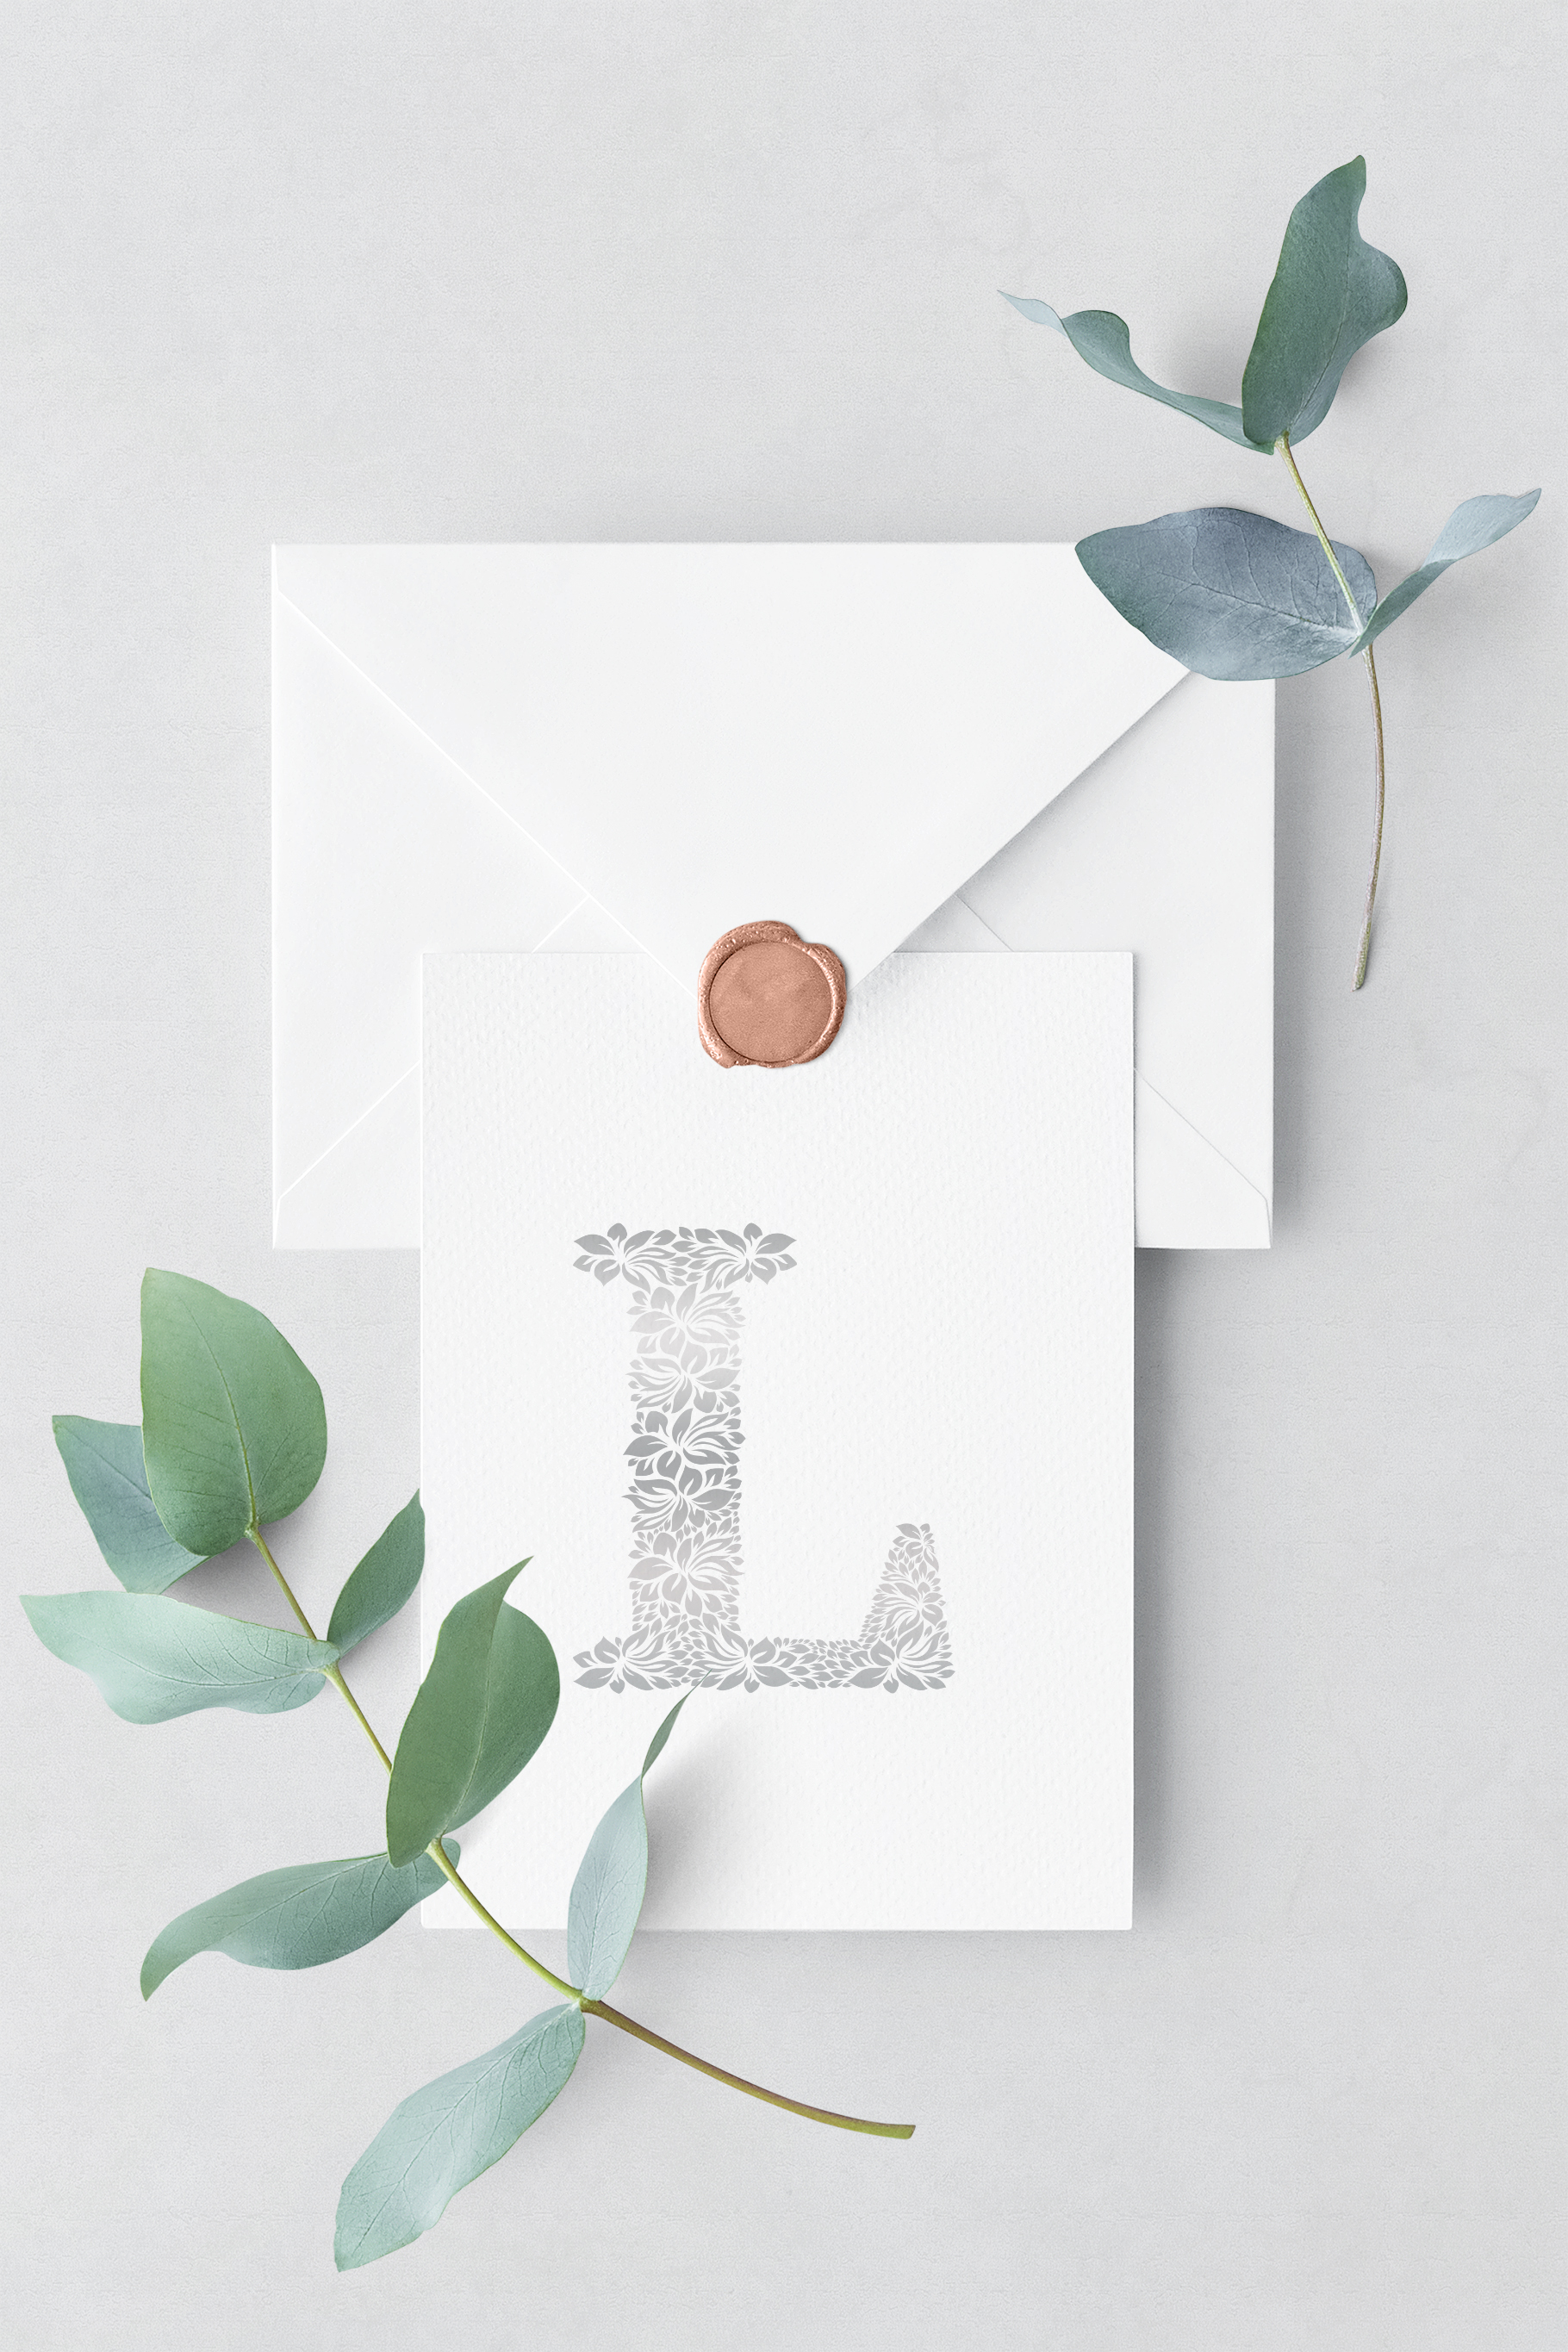 Letter L - Floral Logo Template example image 4